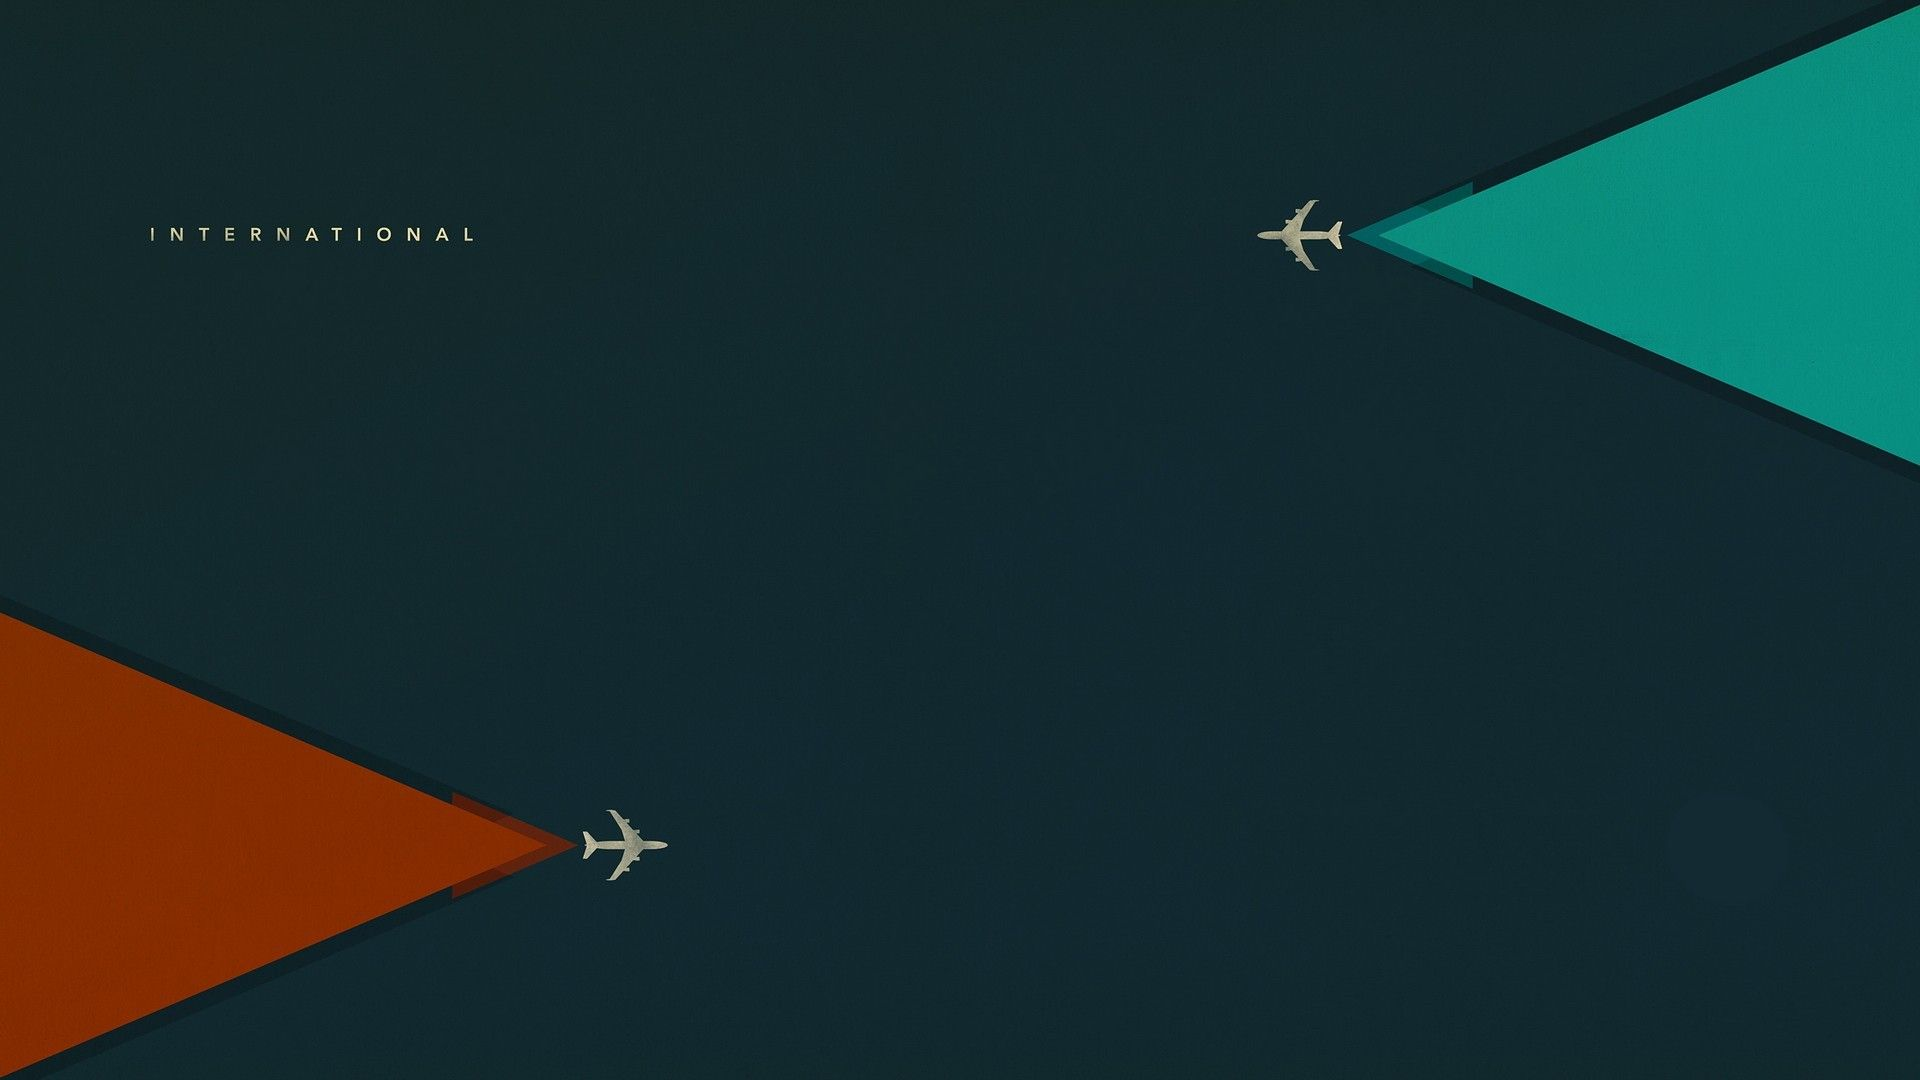 Minimalist Airplane Wallpapers Top Free Minimalist Airplane Backgrounds Wallpaperaccess